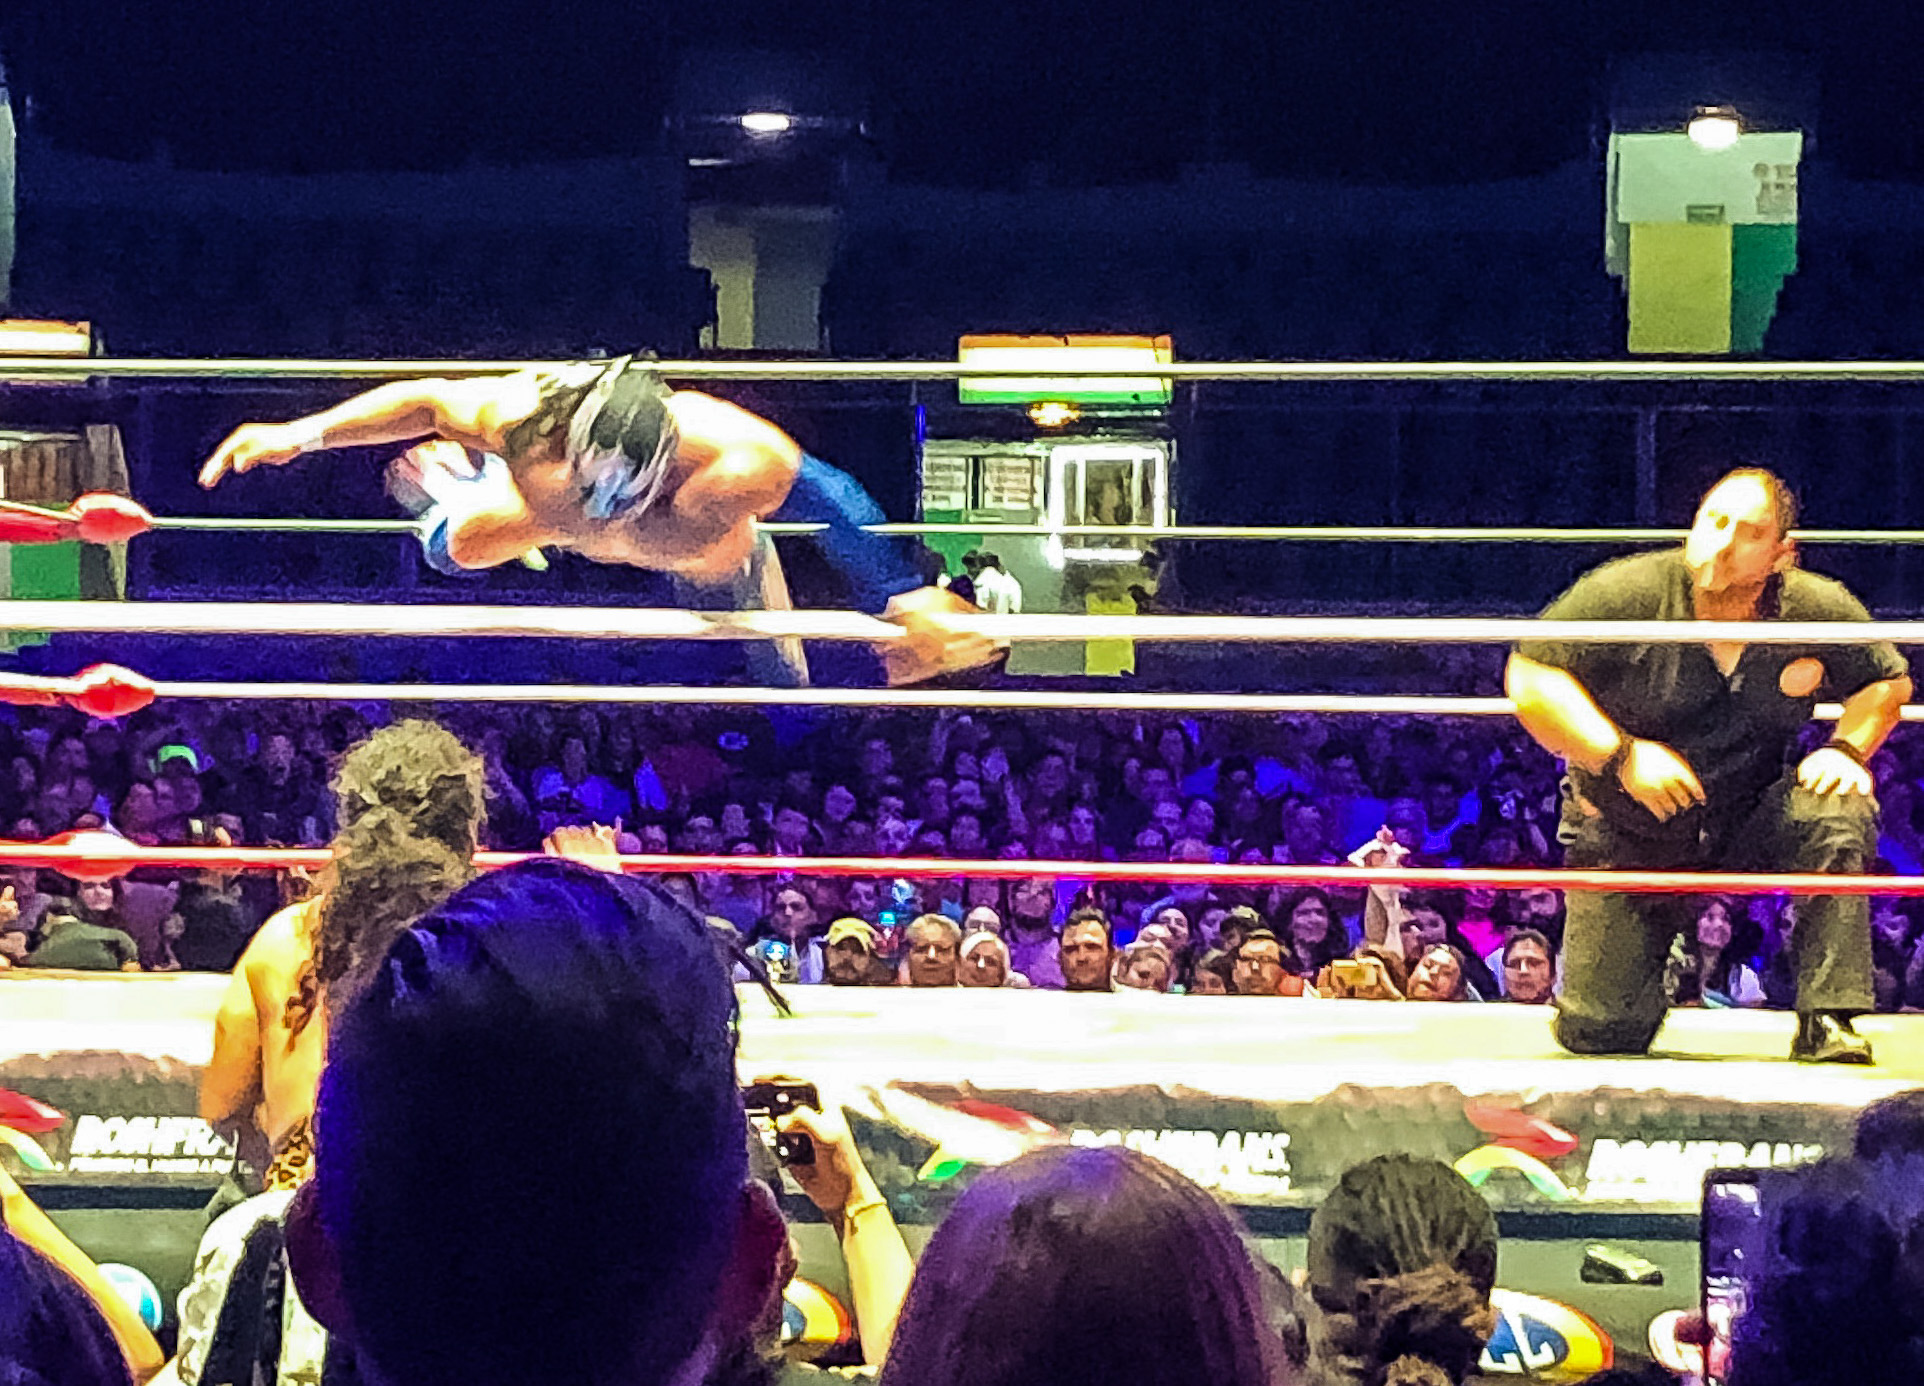 Luchador leaping through ropes at Lucho Libre